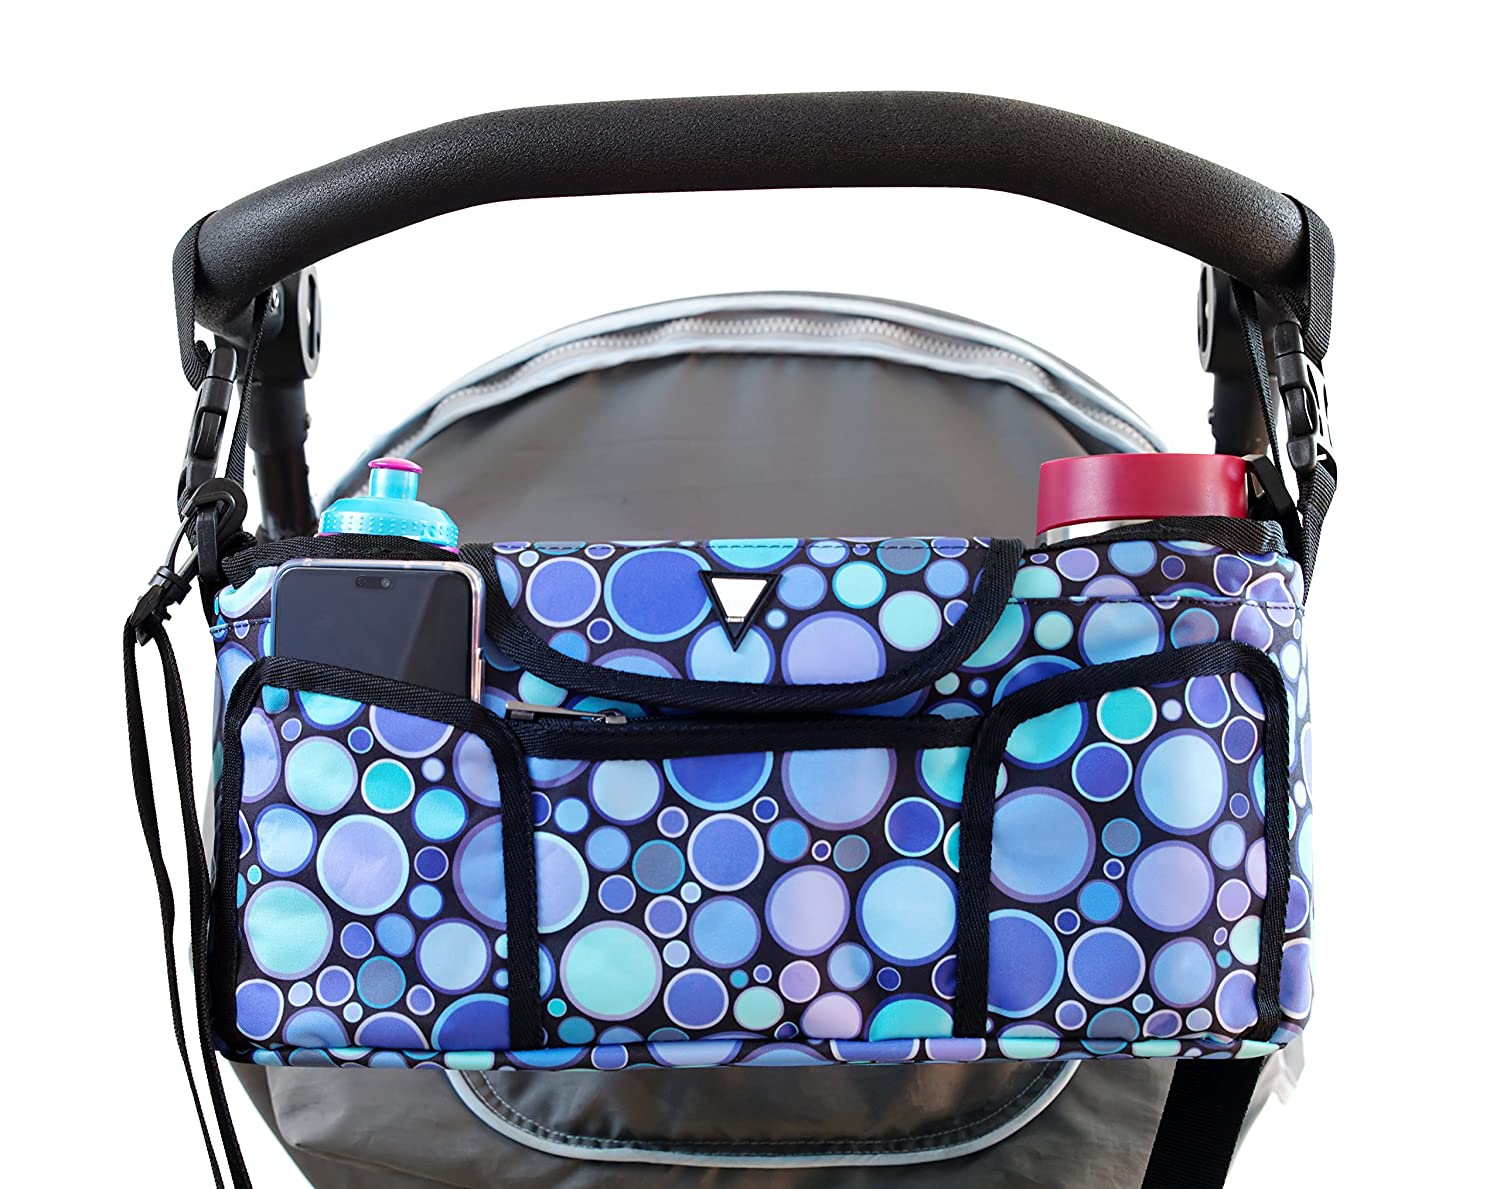 Universal Baby Stroller Organizer Bag with 2 Insulated Cup Holders and Adjustable Shoulder Strap for Baby Accessories, Phones and Keys, The Perfect Baby Shower Gift F.Family